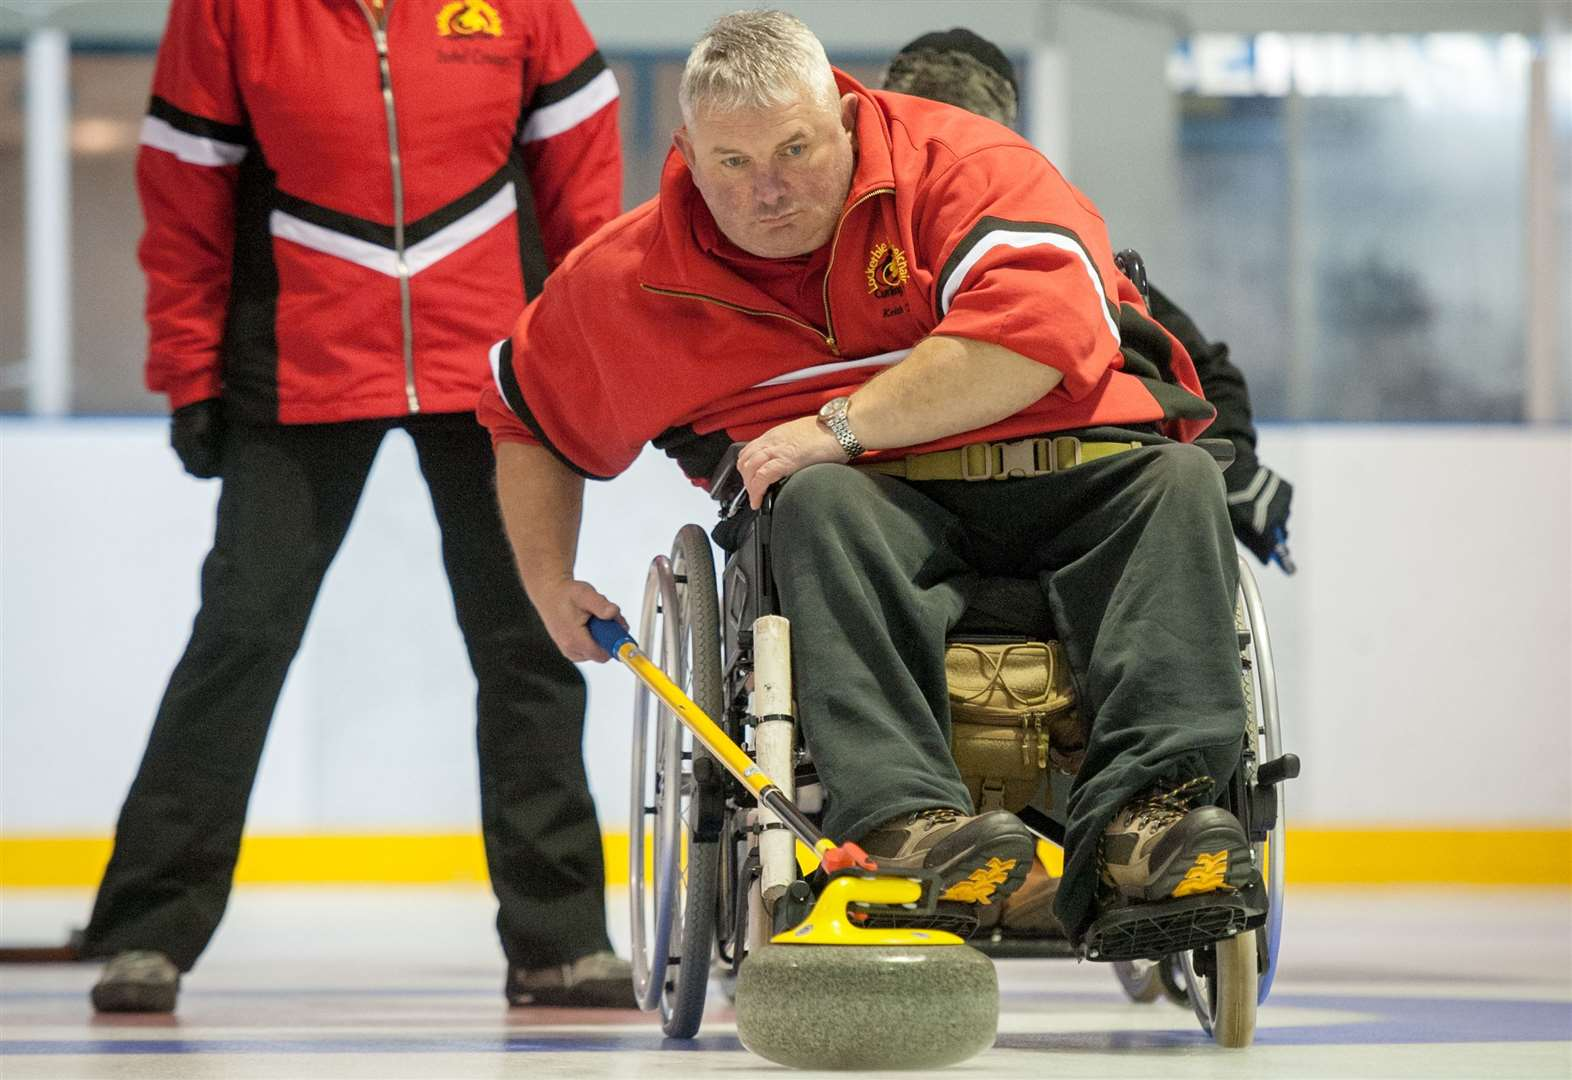 Inverness to host top wheelchair curling event